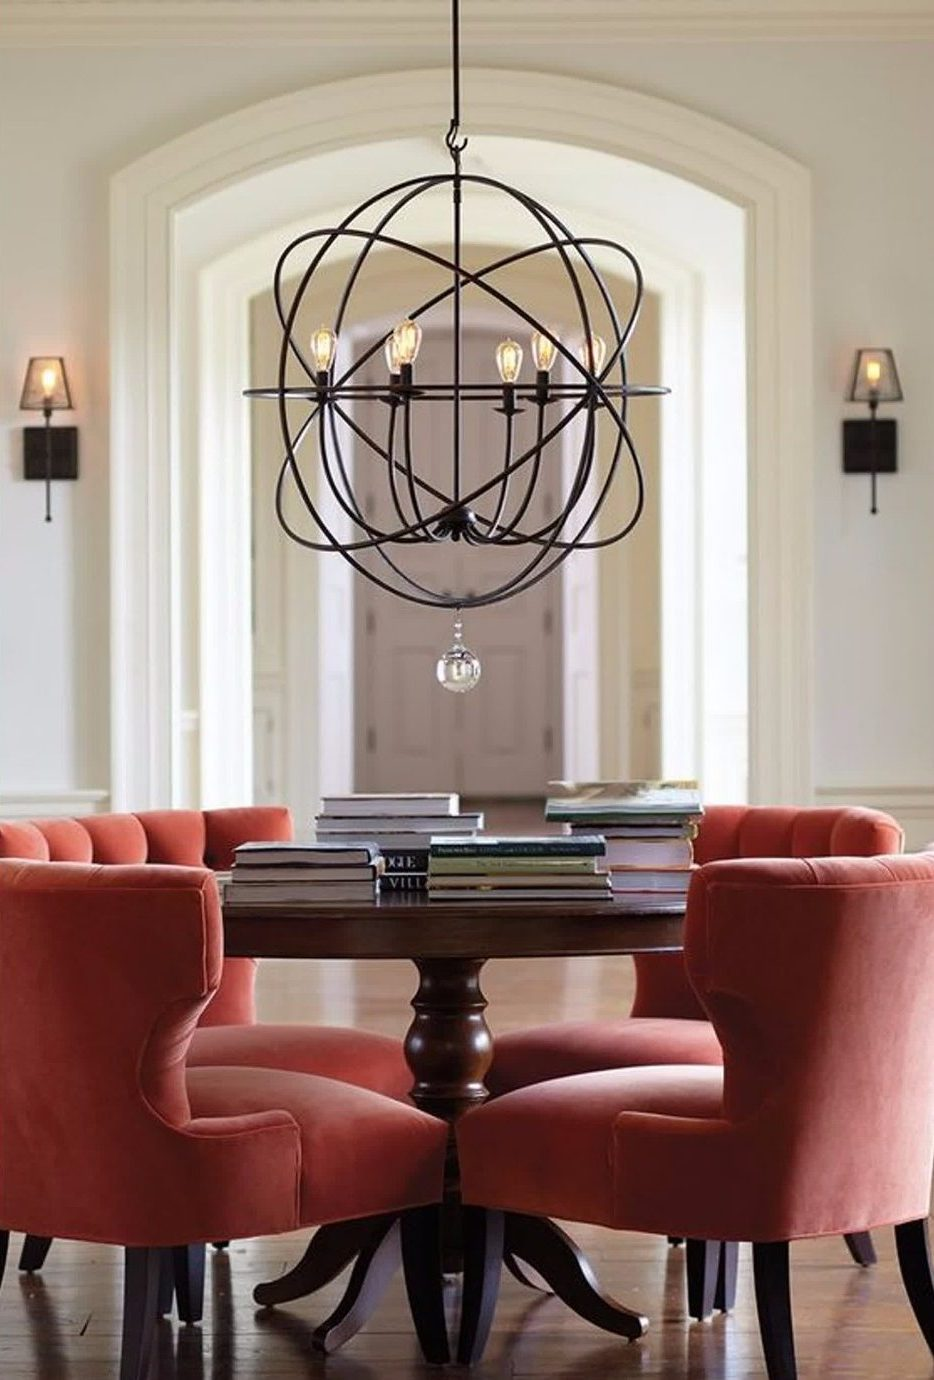 The Best Tips On How To Light a Dining Room | www.bocadolobo.com #moderndiningtables #diningroom #thediningroom #diningarea #diningtables #exclusivedesign #luxuryfurniture #lighting #luxurylighting #lightingtips @moderndiningtables dining room The Best Tips On How To Light a Dining Room The Best Tips On How To Light a Dining Room 4 e1506612721818